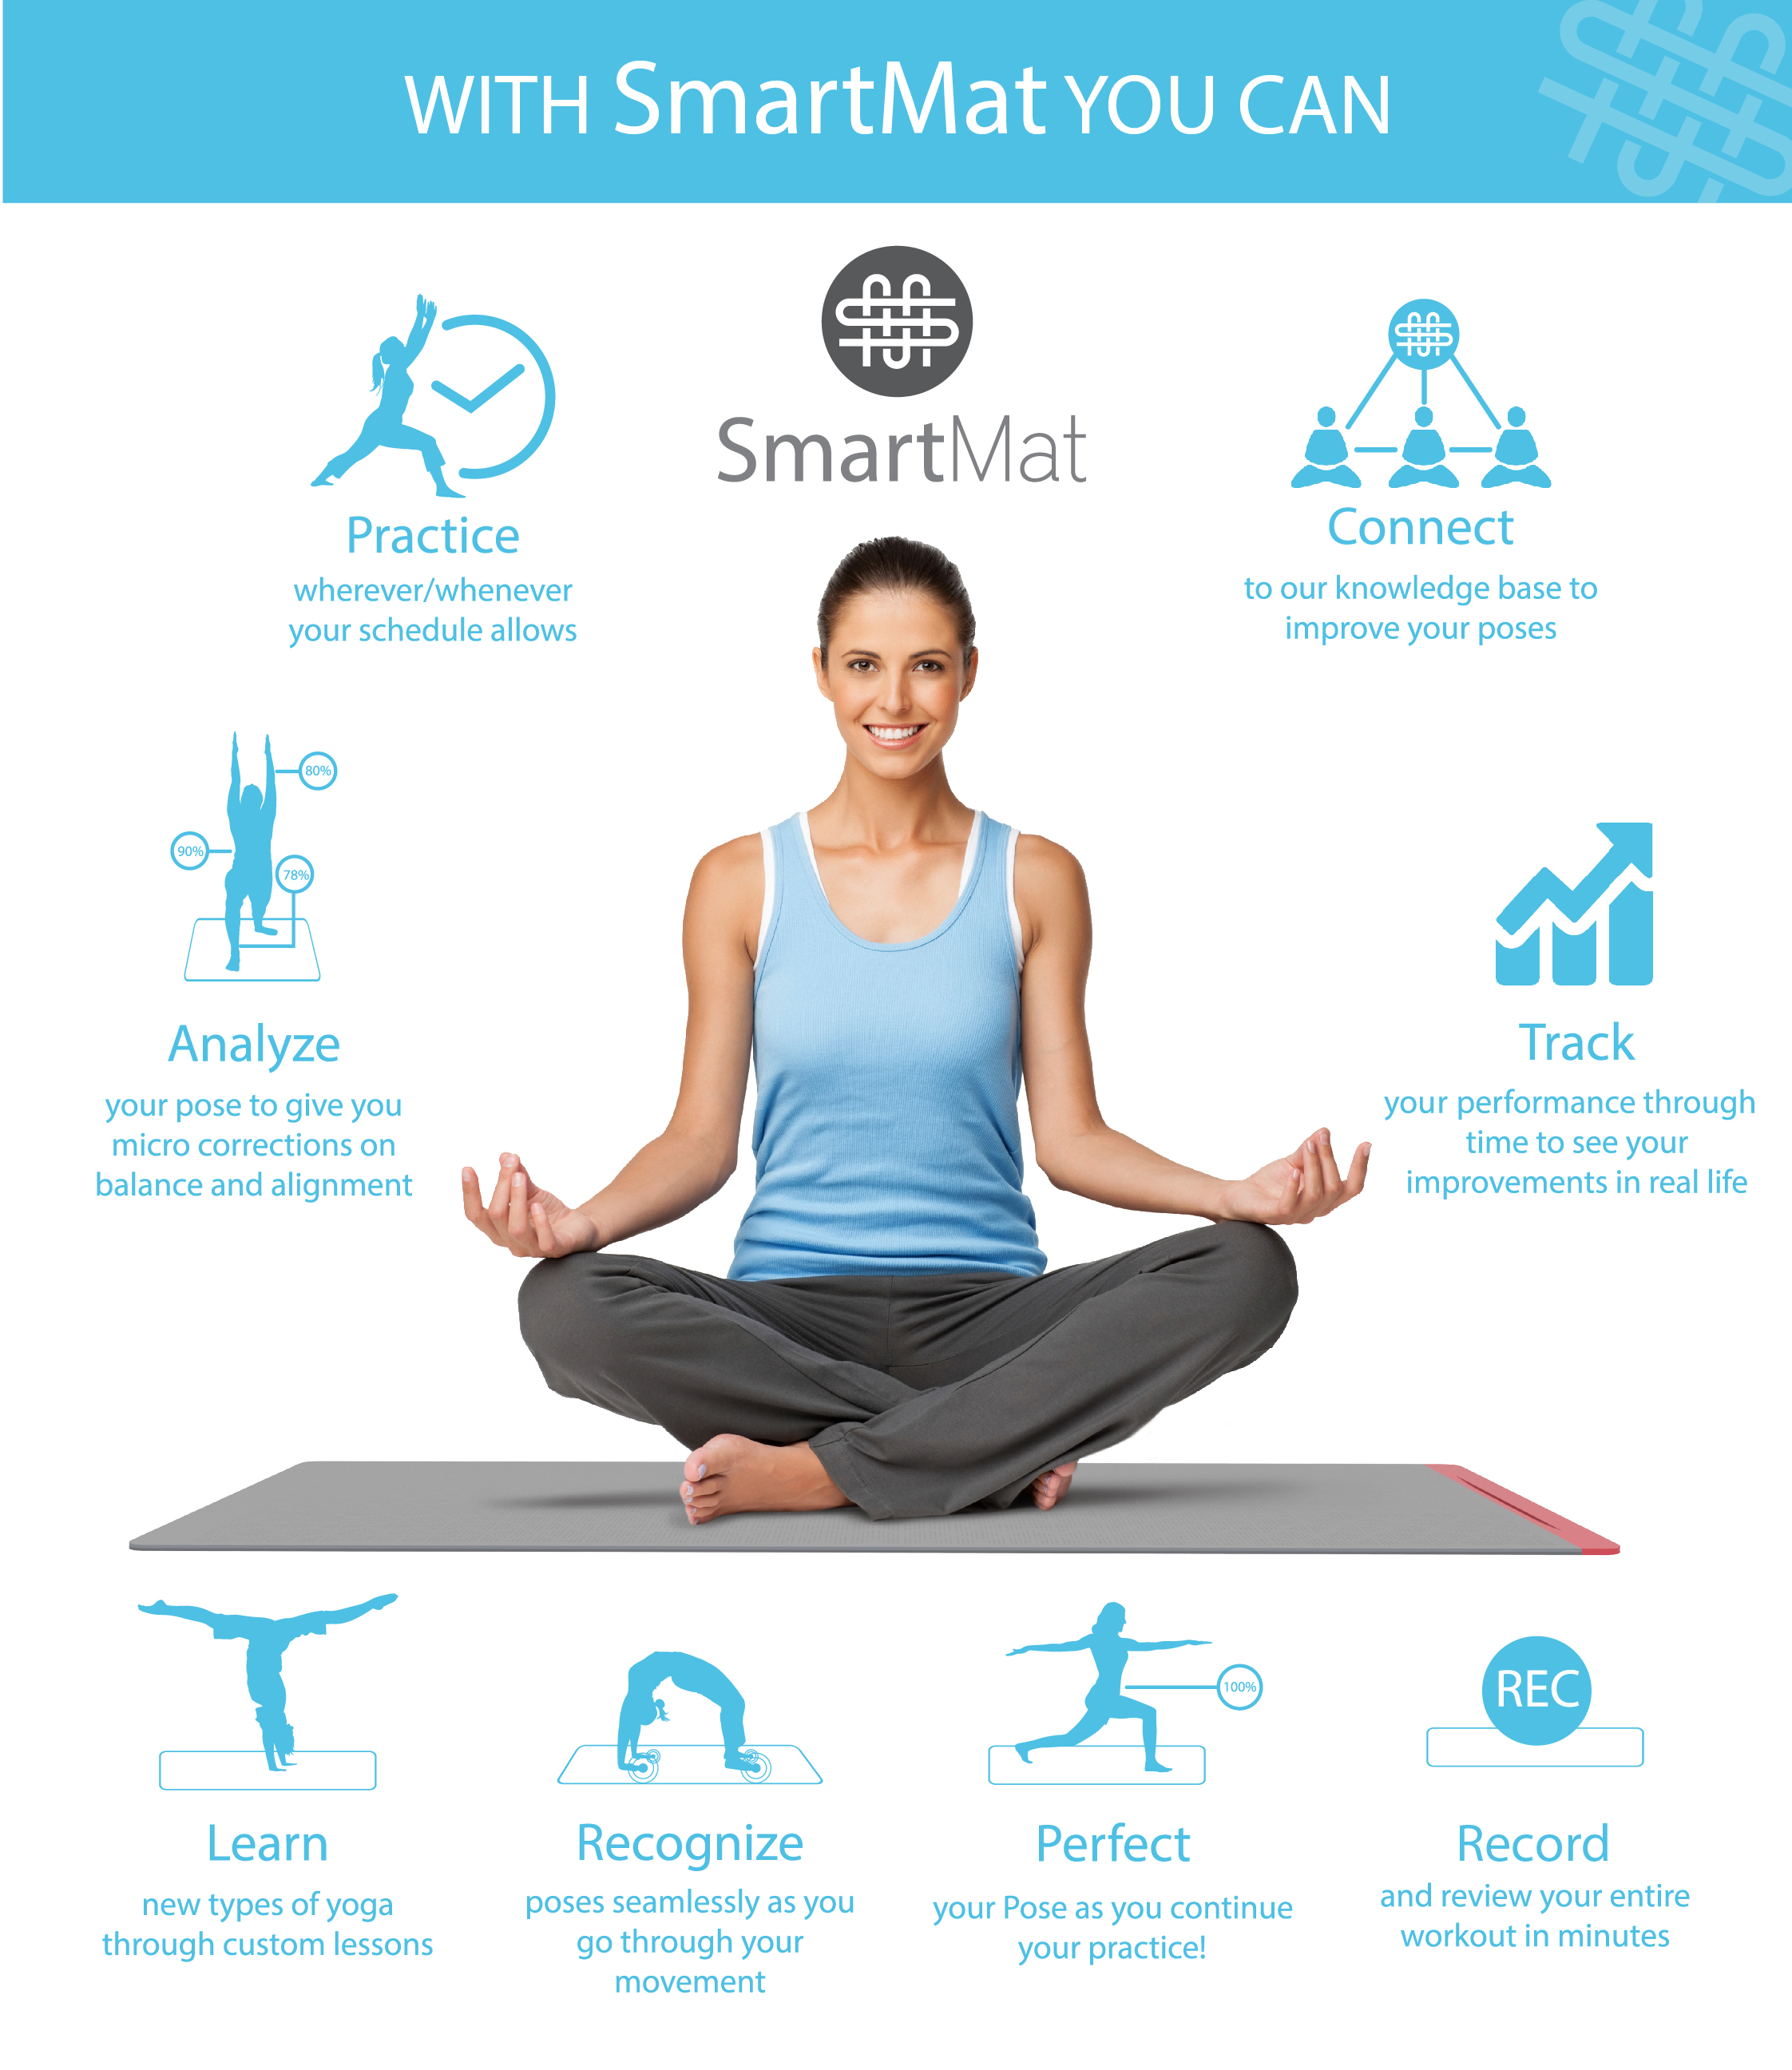 SmartMat: The Worlds First Intelligent Yoga Mat